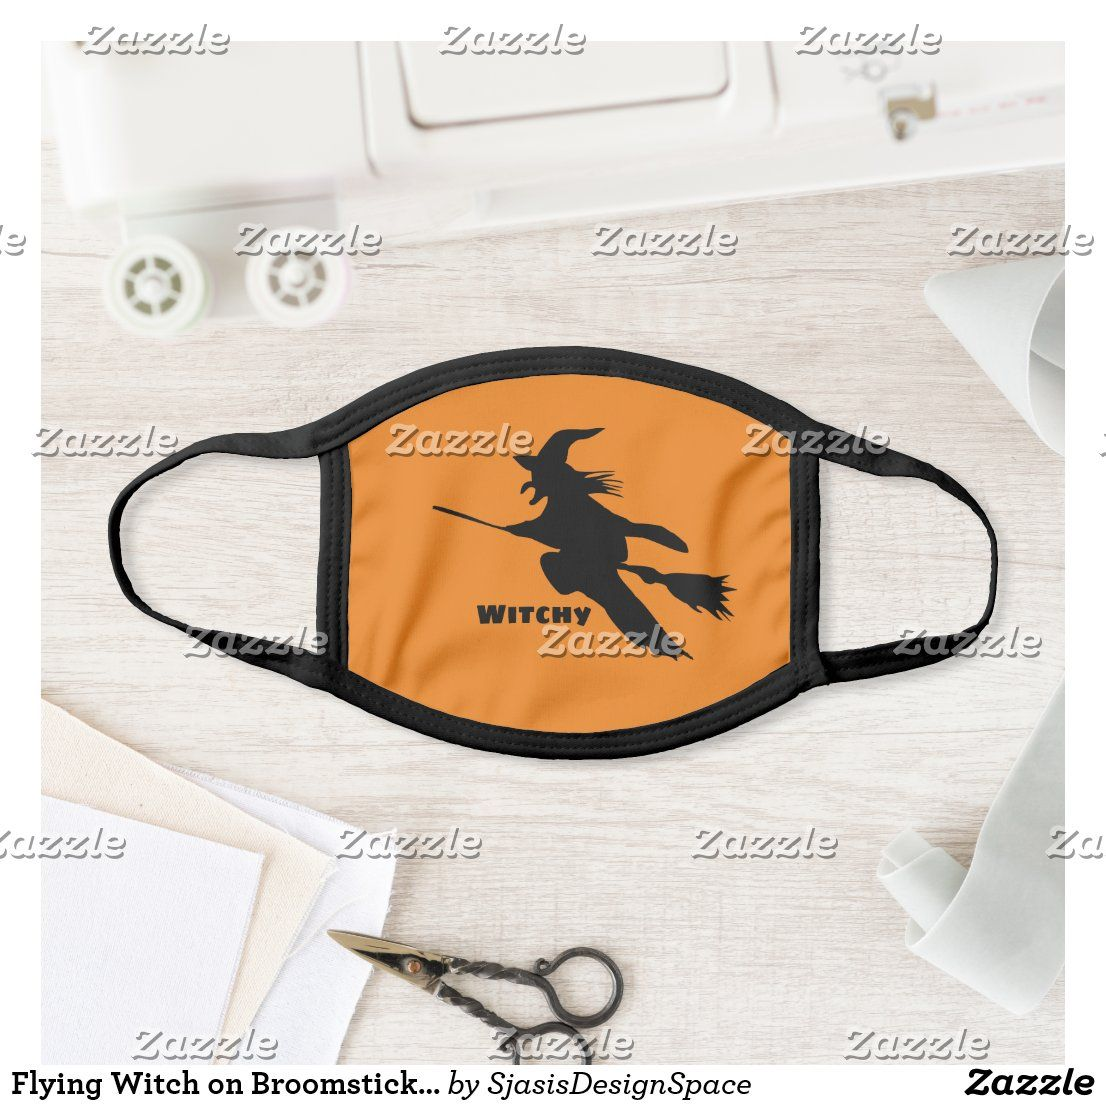 Flying Witch on Broomstick Halloween Face Mask Zazzle